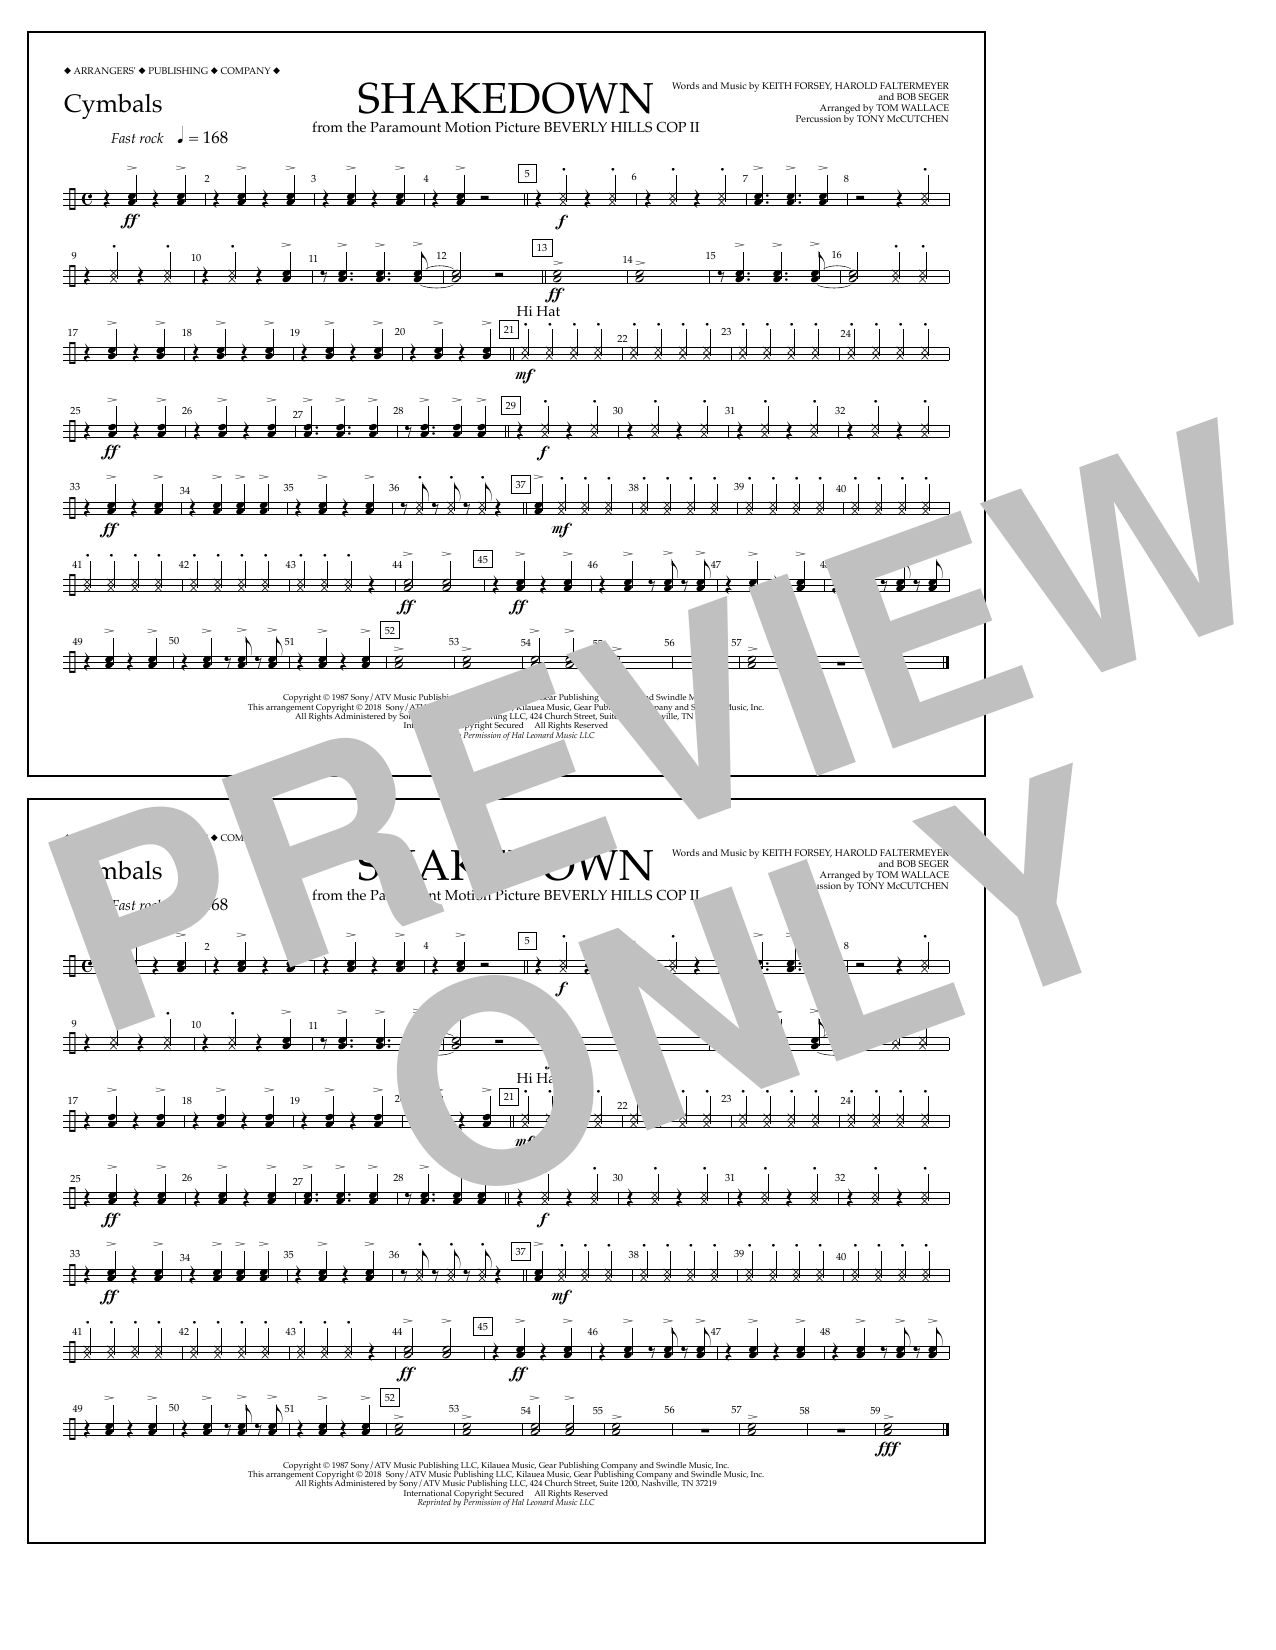 Tom Wallace Shakedown - Cymbals sheet music notes and chords. Download Printable PDF.